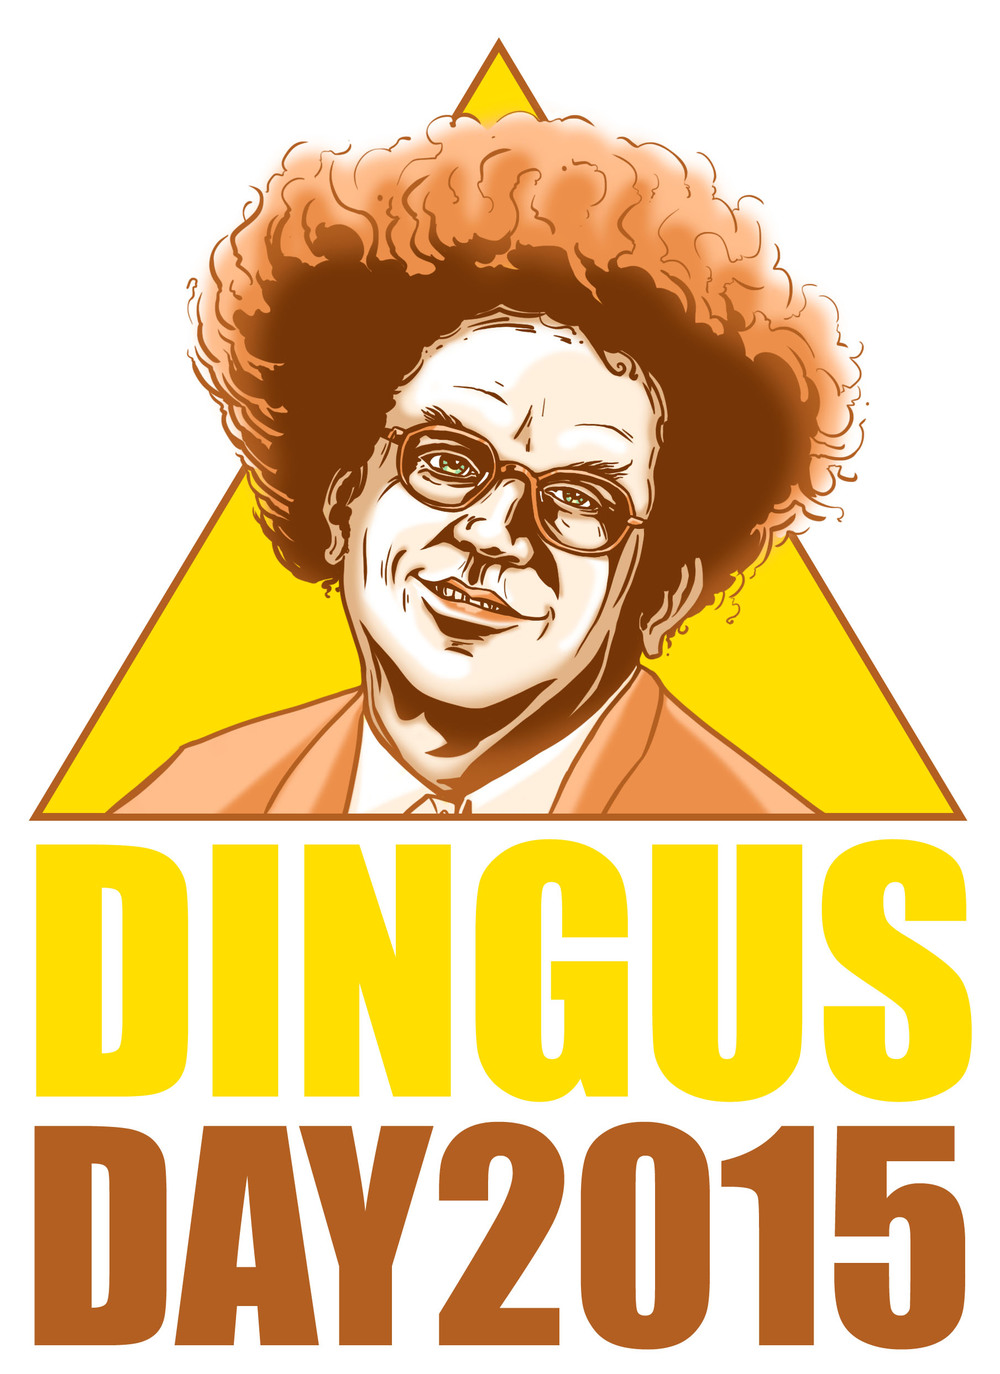 ...Dr. Brule, the face of National Dingus Day 2015...